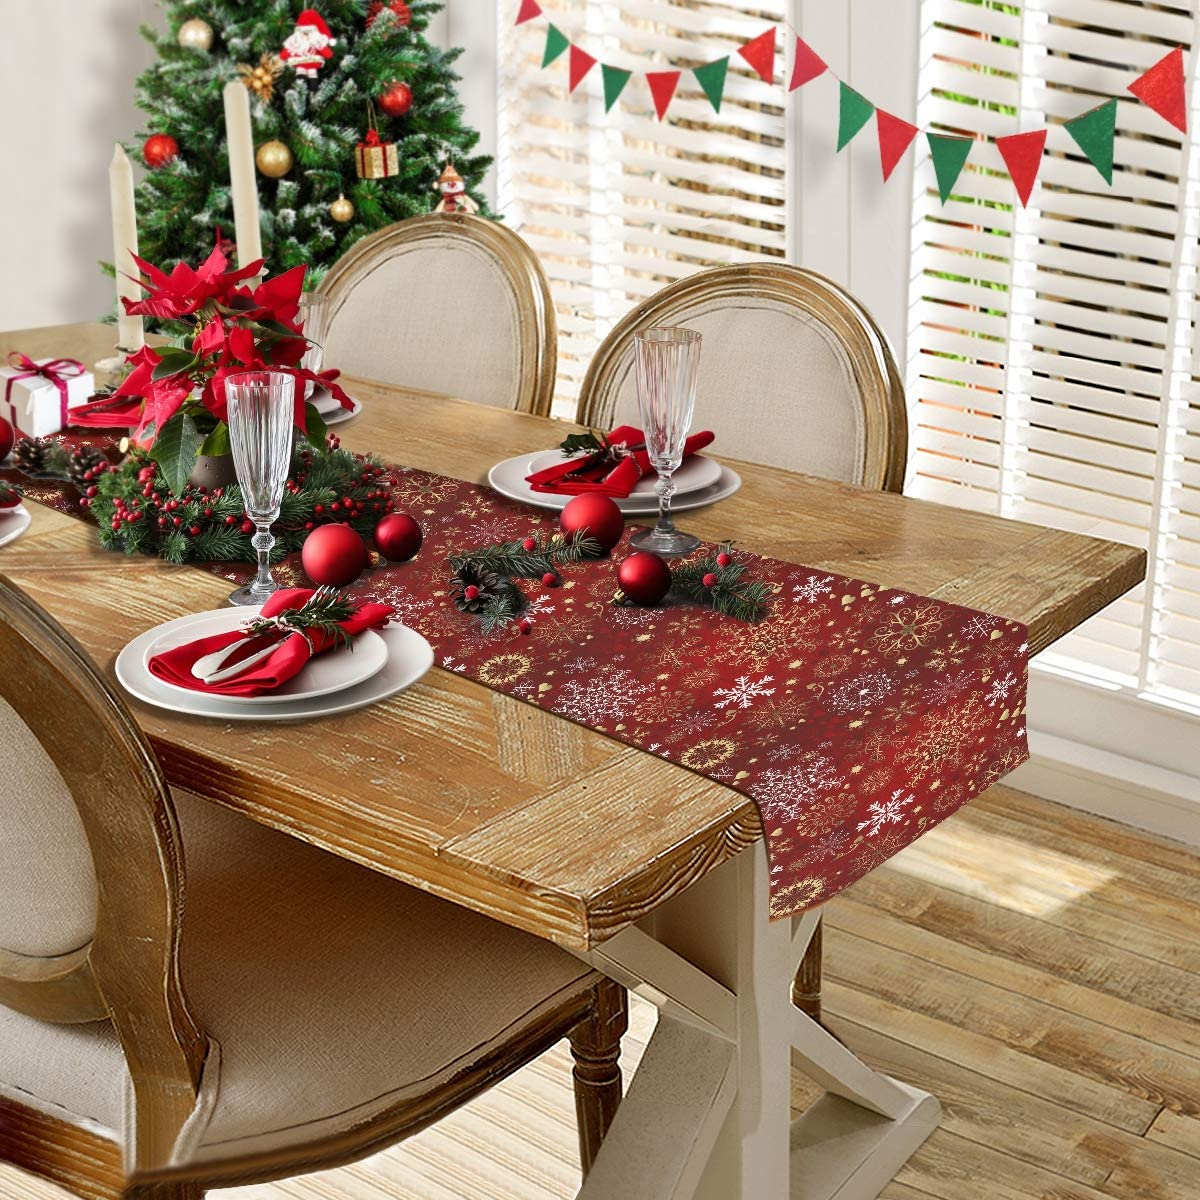 CaTaKu Merry Christmas Xmas Table Runner for Dinner Table Book Table 90 x 13 Inches Double Side Print for Party or Any Festival.